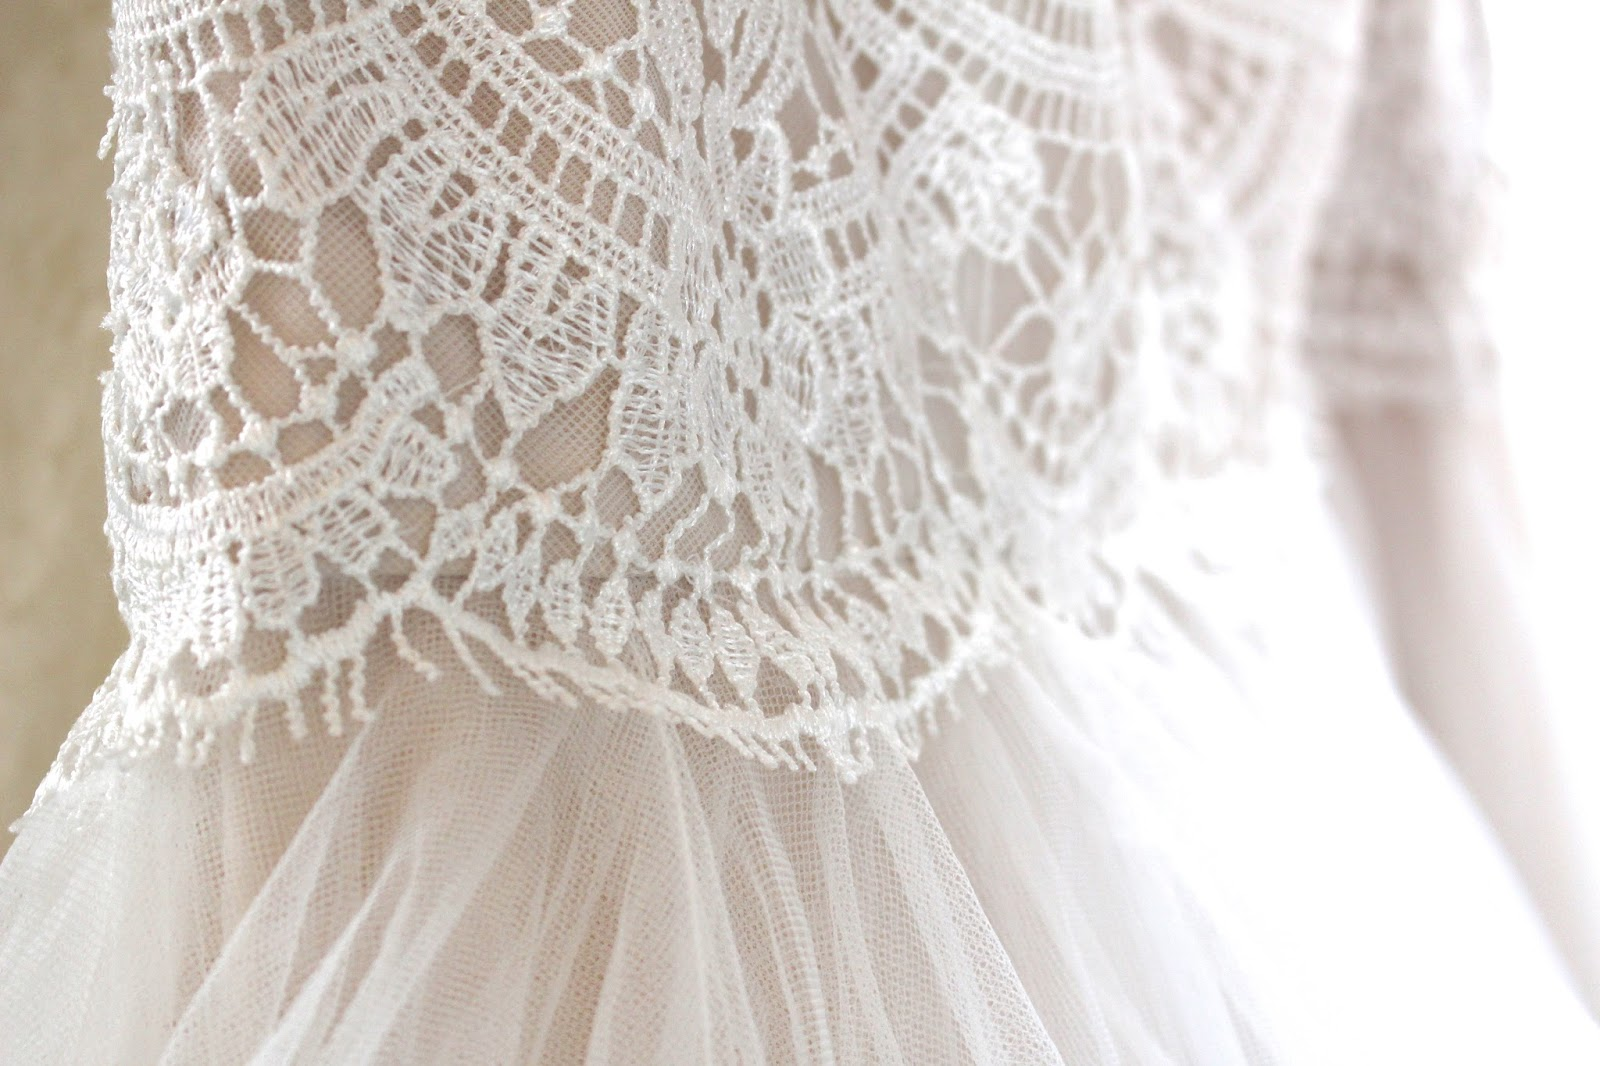 bridal gown close up shot